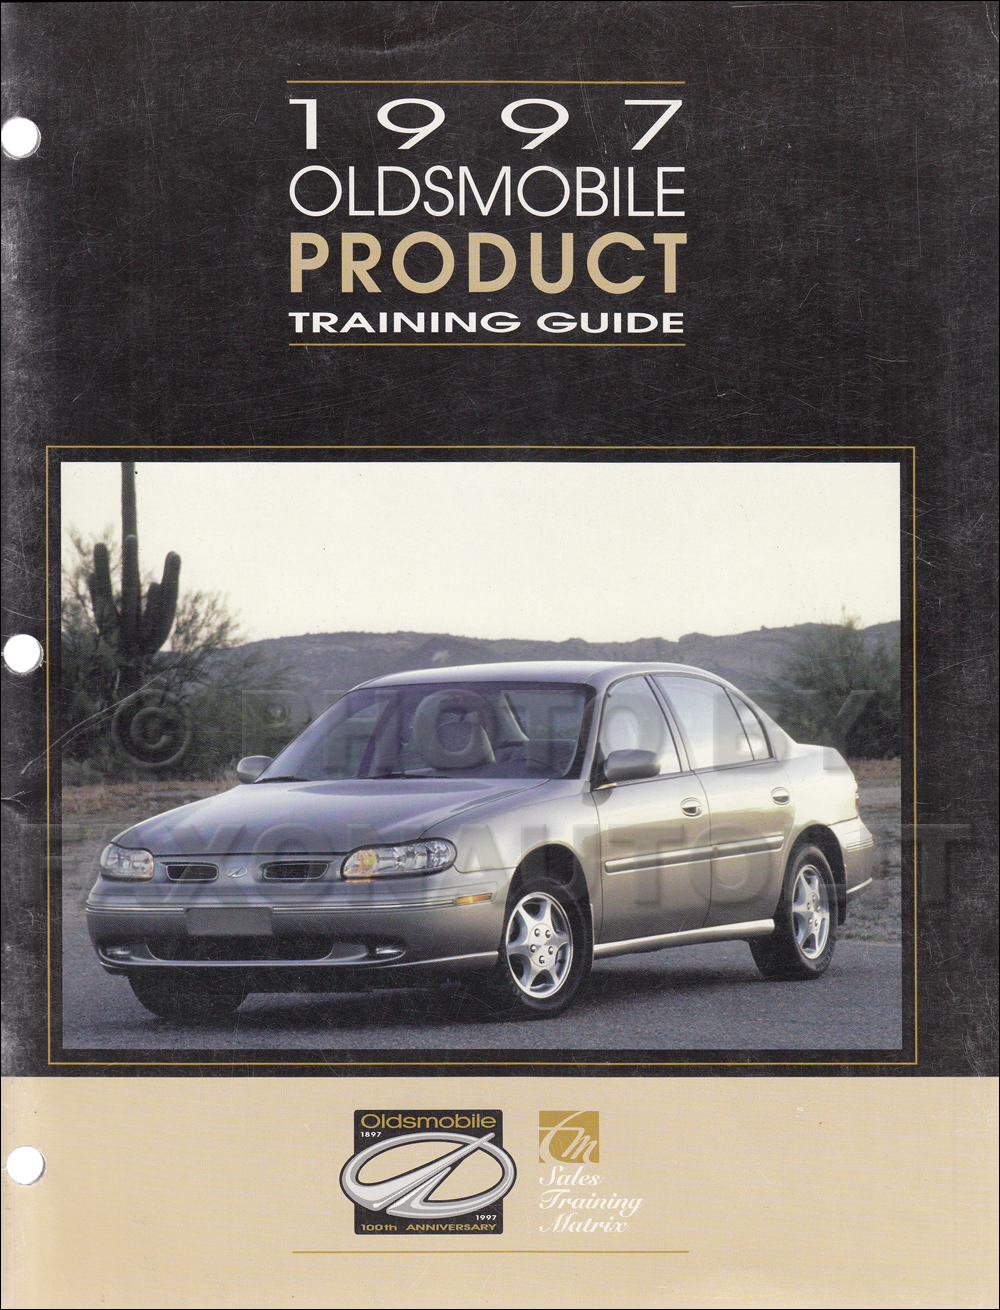 1997 Oldsmobile Sales Training Guide Original. 1966 Cadillac Body Repair  Manual Reprint